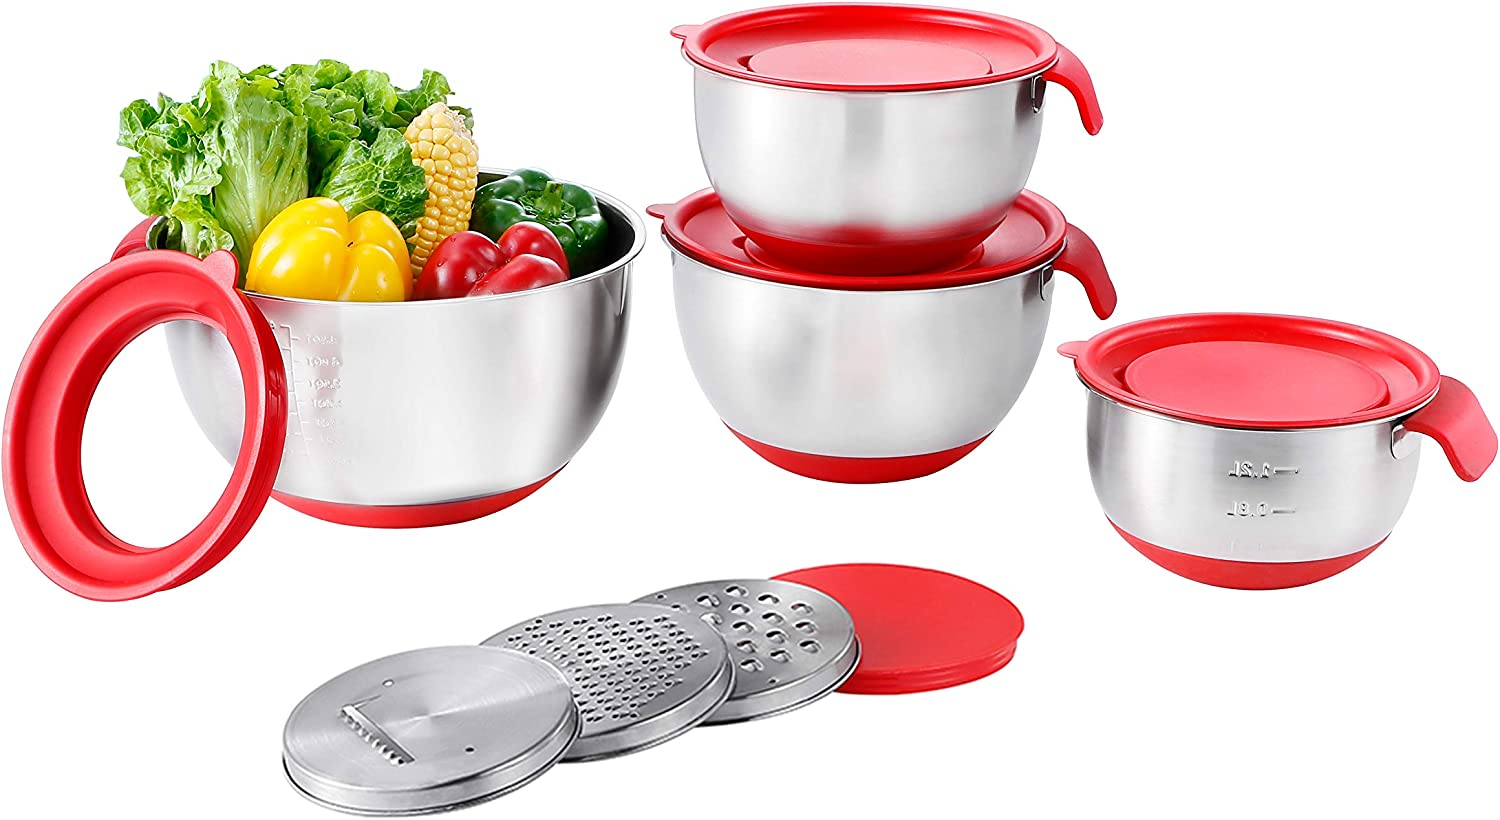 Stainless Steel Mixing Bowls with Airtight Lids, Serving Bowl Set of 4 for Kitchen Cooking Baking Food Storage with 3 Graters,Measurement marks and non-slip bottoms,Size 1.5/2/3/5QT